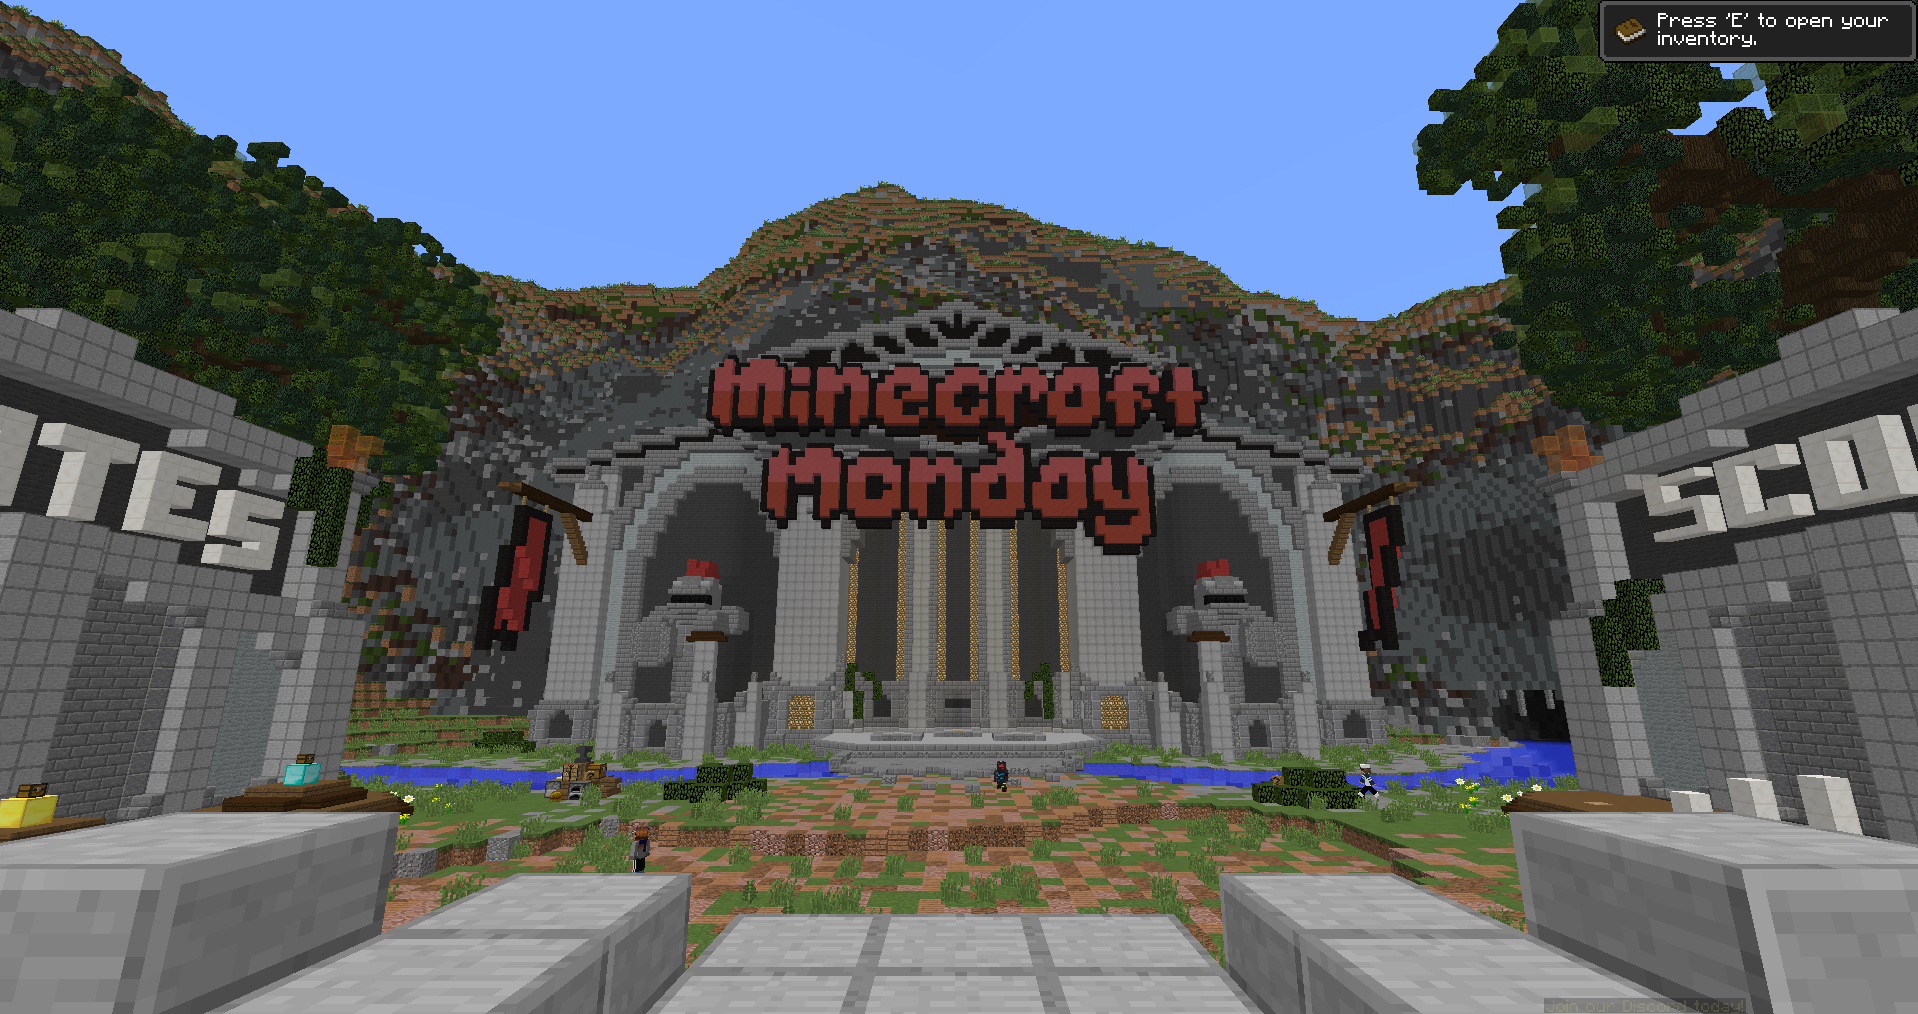 How to join the Minecraft Monday server | Dot Esports